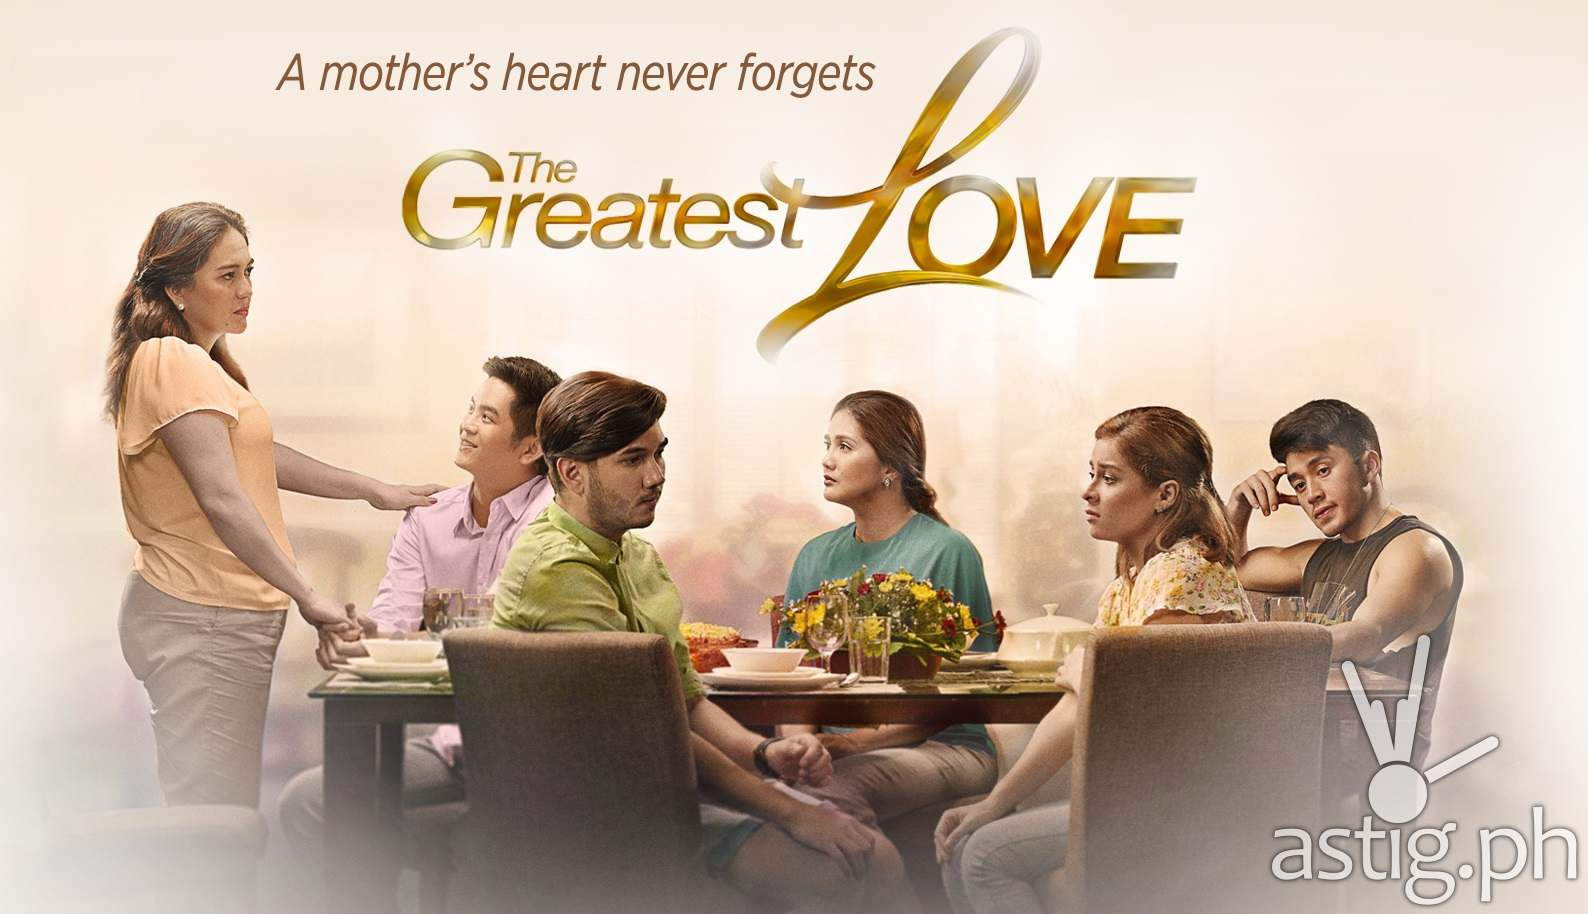 The Greatest Love -- A mother's heart never forgets